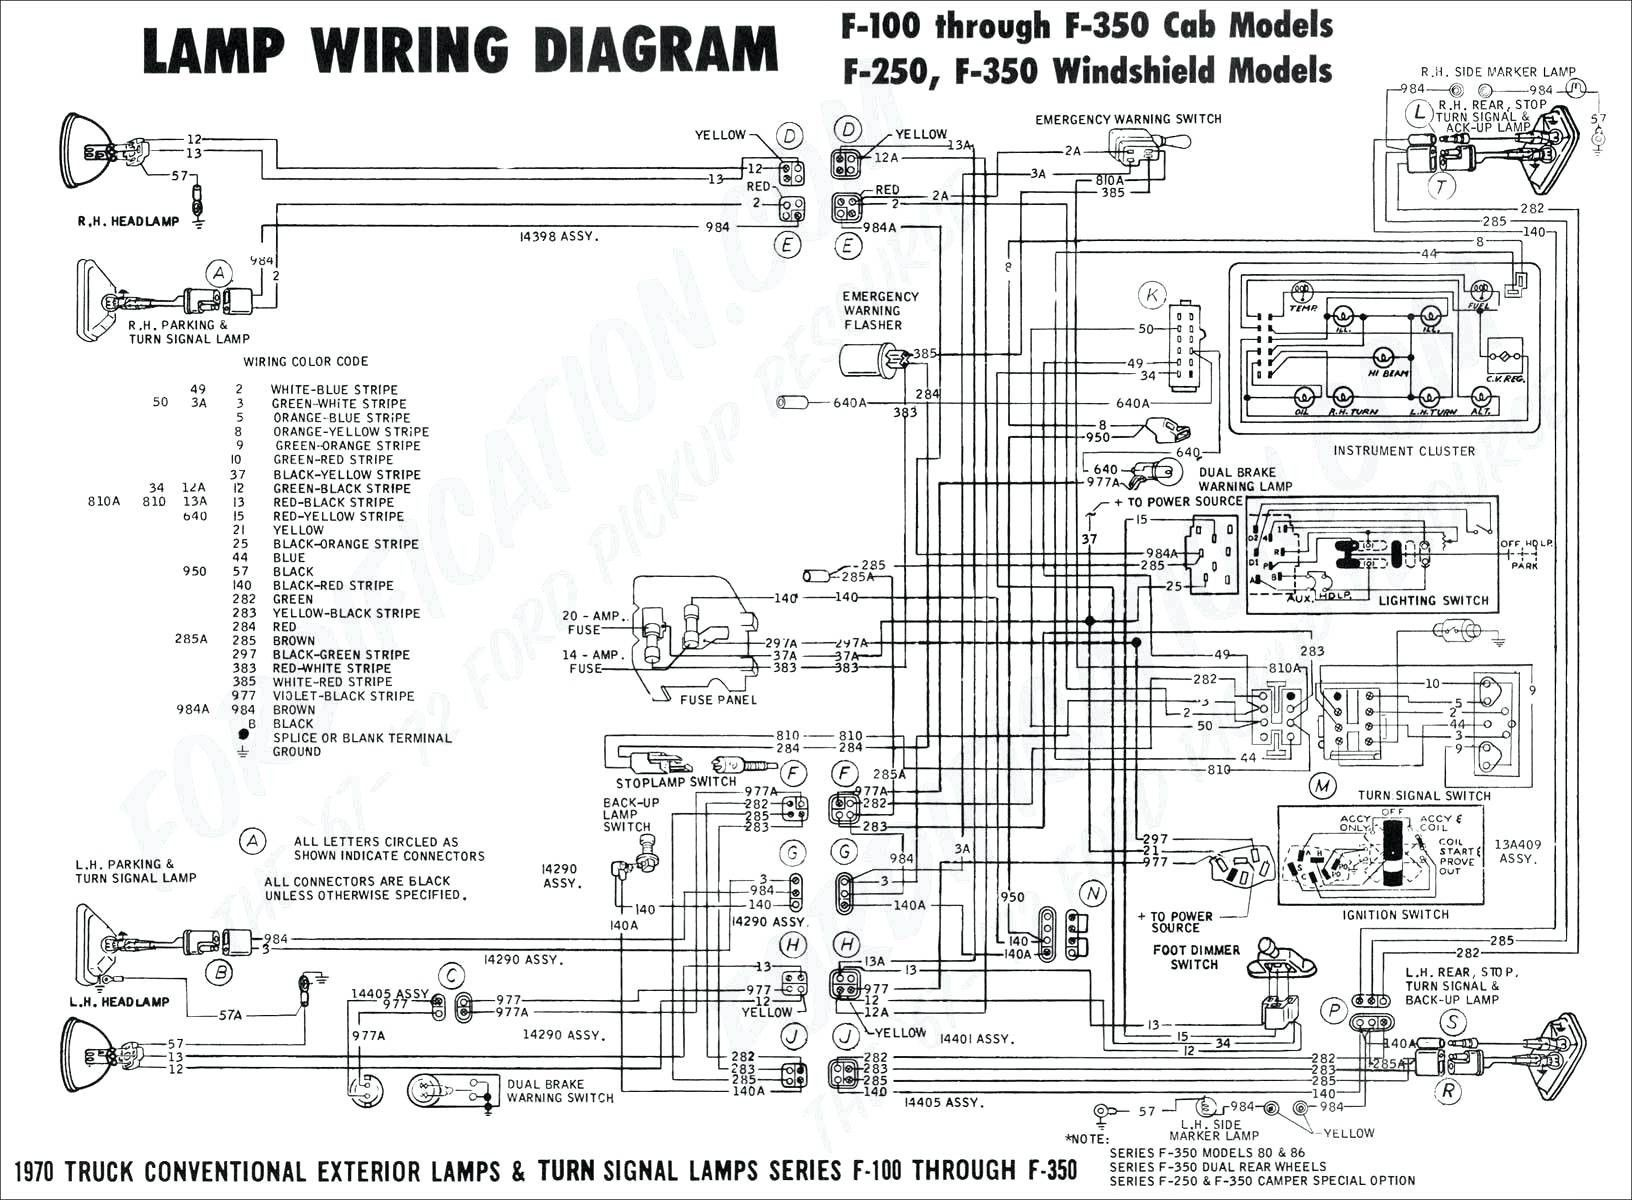 Marathon Electric Motor Wiring Diagram from i.pinimg.com